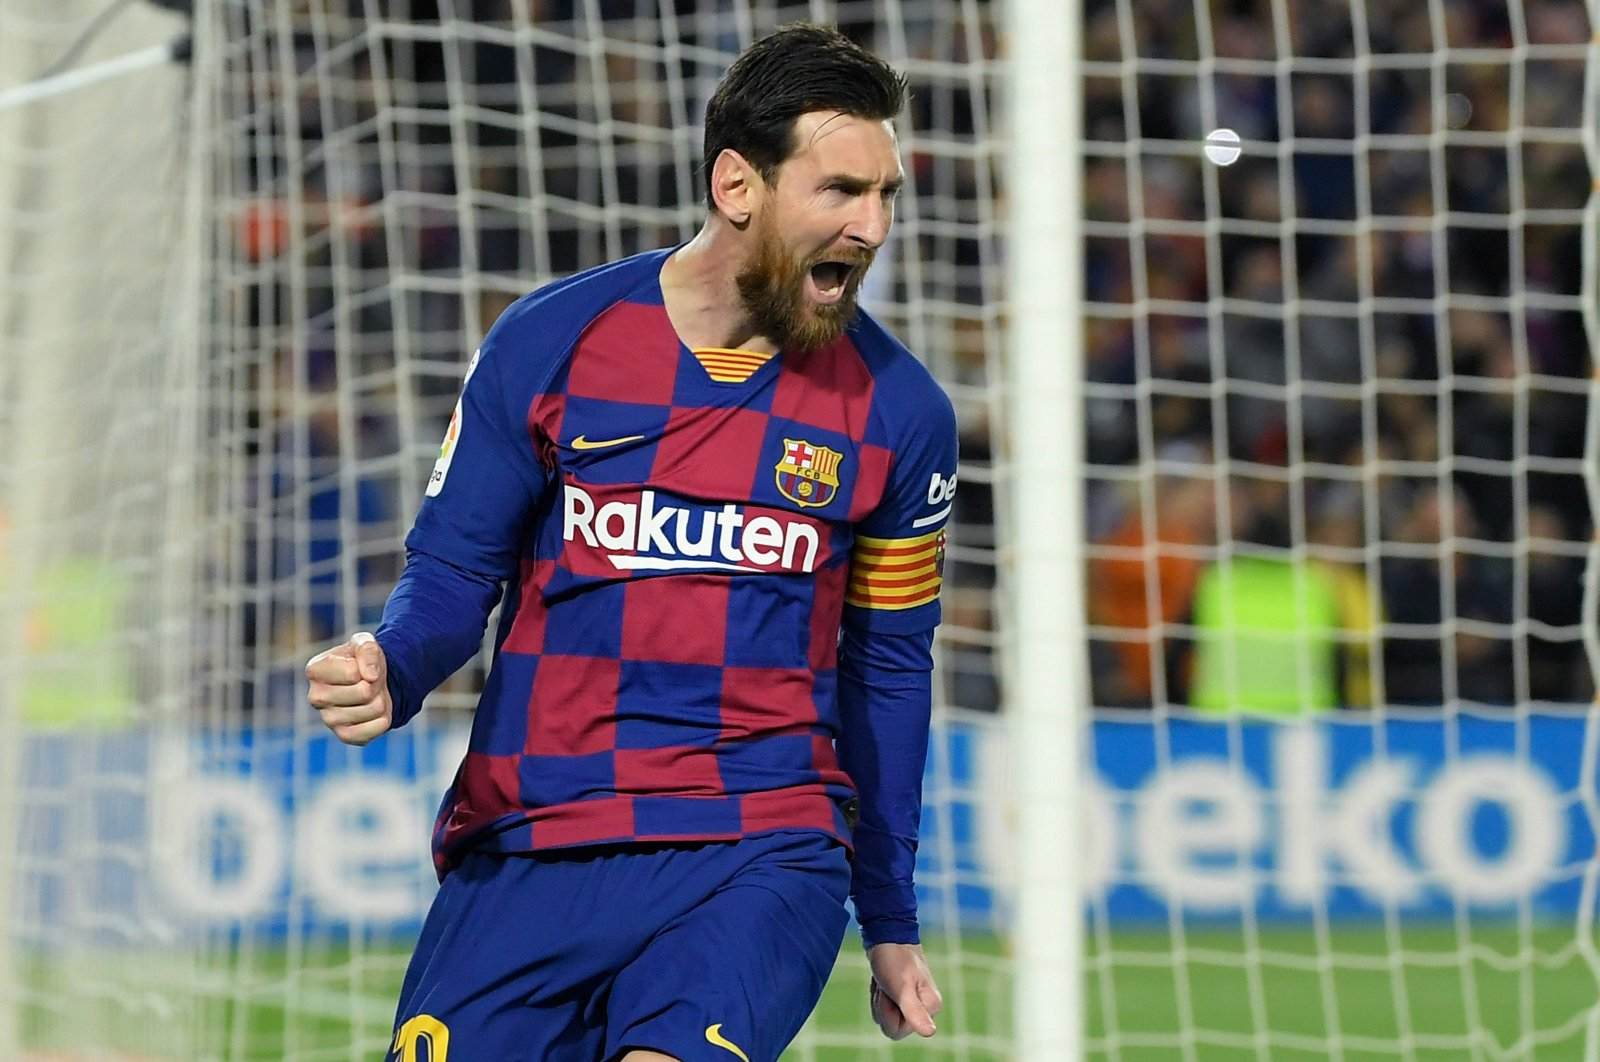 Barcelona's Argentine forward Lionel Messi celebrates after scoring a goal during the Spanish league football match between FC Barcelona and Real Sociedad at the Camp Nou stadium in Barcelona, Spain on March 7, 2020. (AFP Photo)